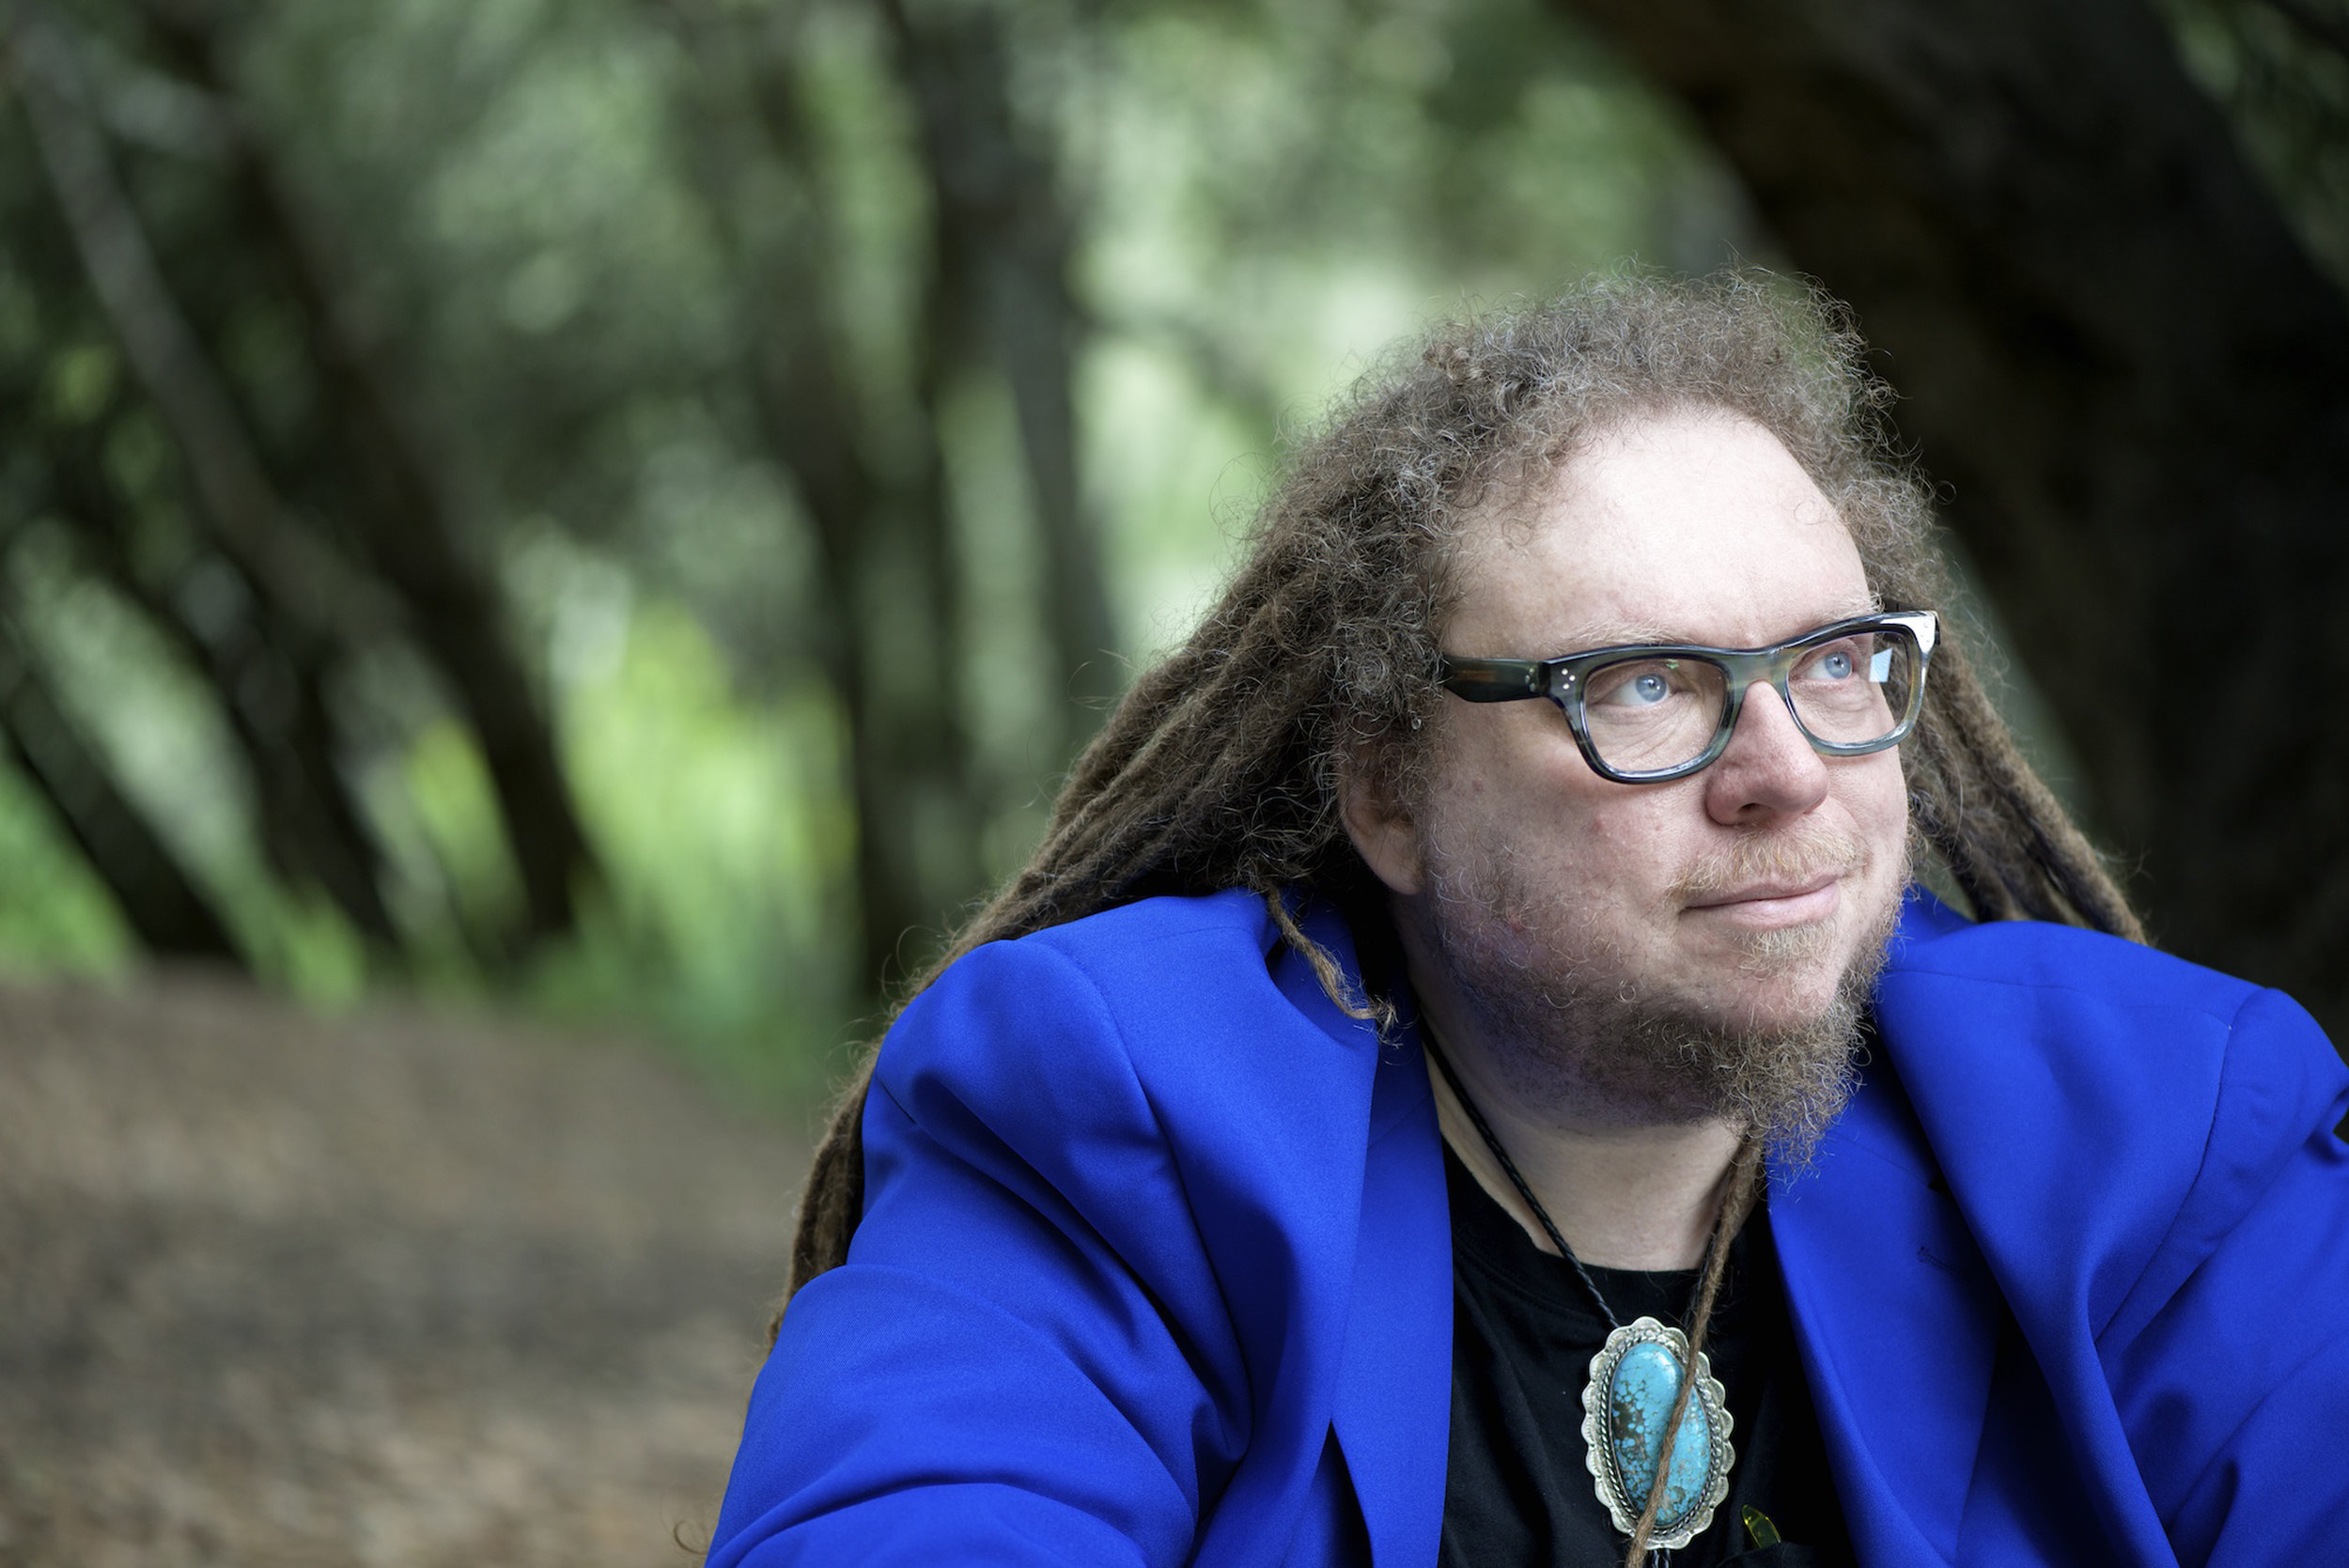 JARON LANIER - JARON is 2010 TIME100 Thinkers. He is one of the leading philosophers of the digital age. He is a computer scientist and avant-garde composer. Jaron's books include Dawn of the New Everything: Encounters with Reality and Virtual Reality, Who Owns the Future?, and the seminal You Are Not a Gadget: A Manifesto. His latest book bears a self-explanatory title: Ten Arguments for Deleting Your Social Media Accounts Right Now.